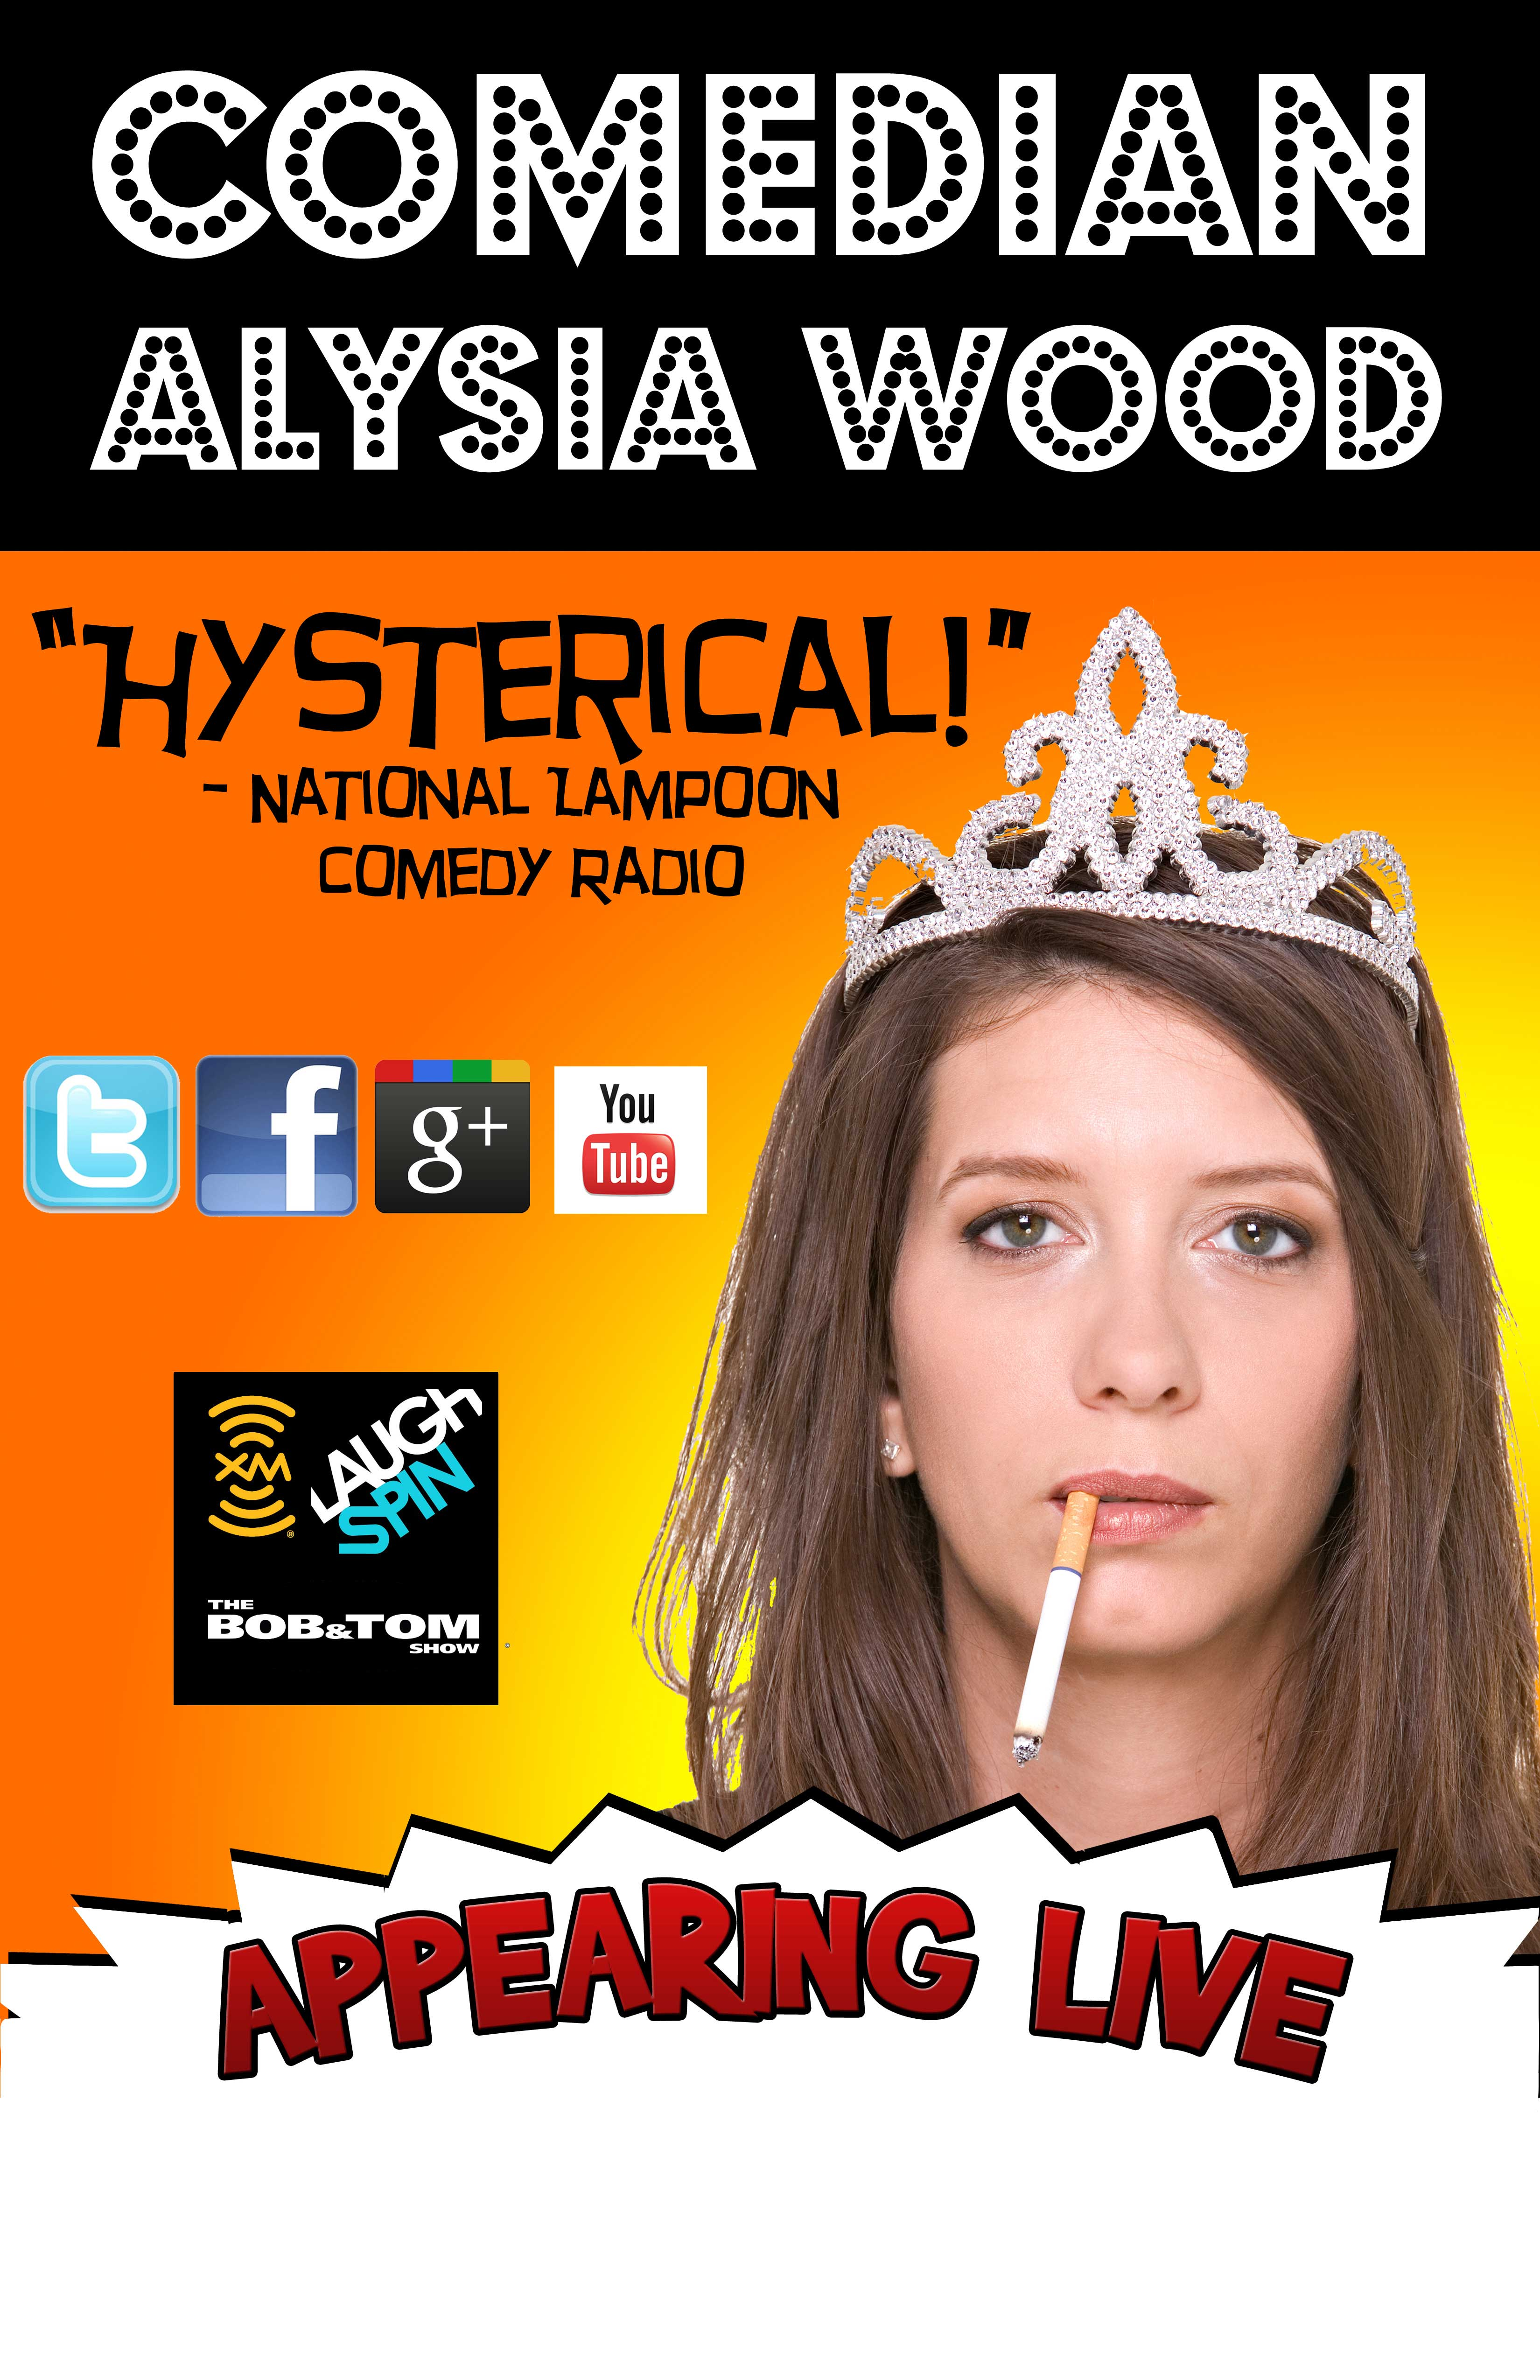 Alysia Wood Tour Poster with Cigarette